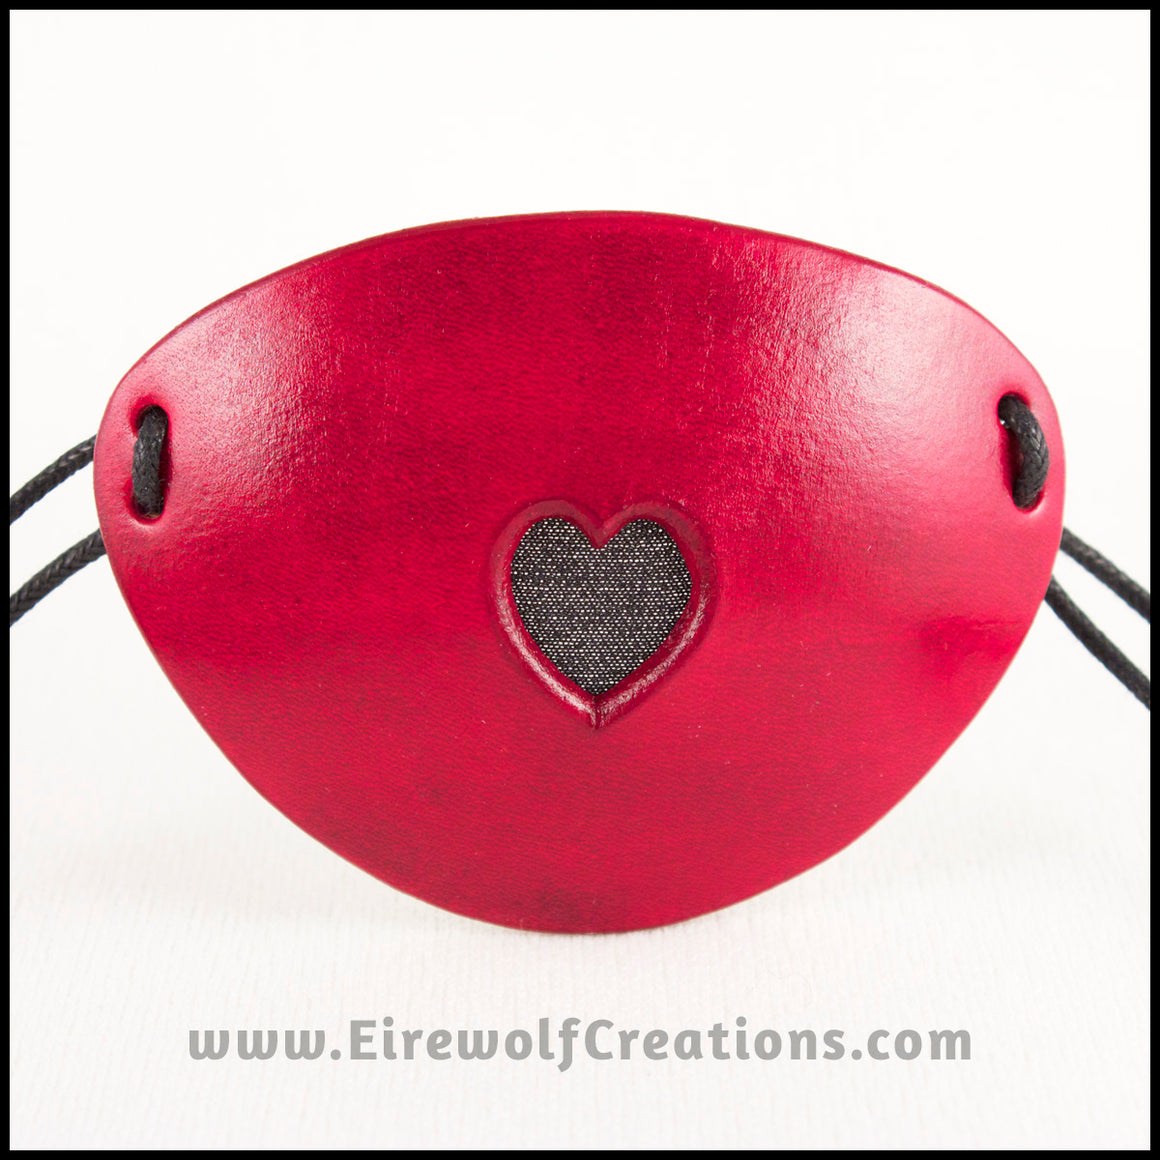 A handmade leather dyed red eye patch with a heart cut out, backed with transparent black fabric to allow some visibility, for a masquerade costume or pirate cosplay. By Erin Metcalf of Eirewolf Creations.